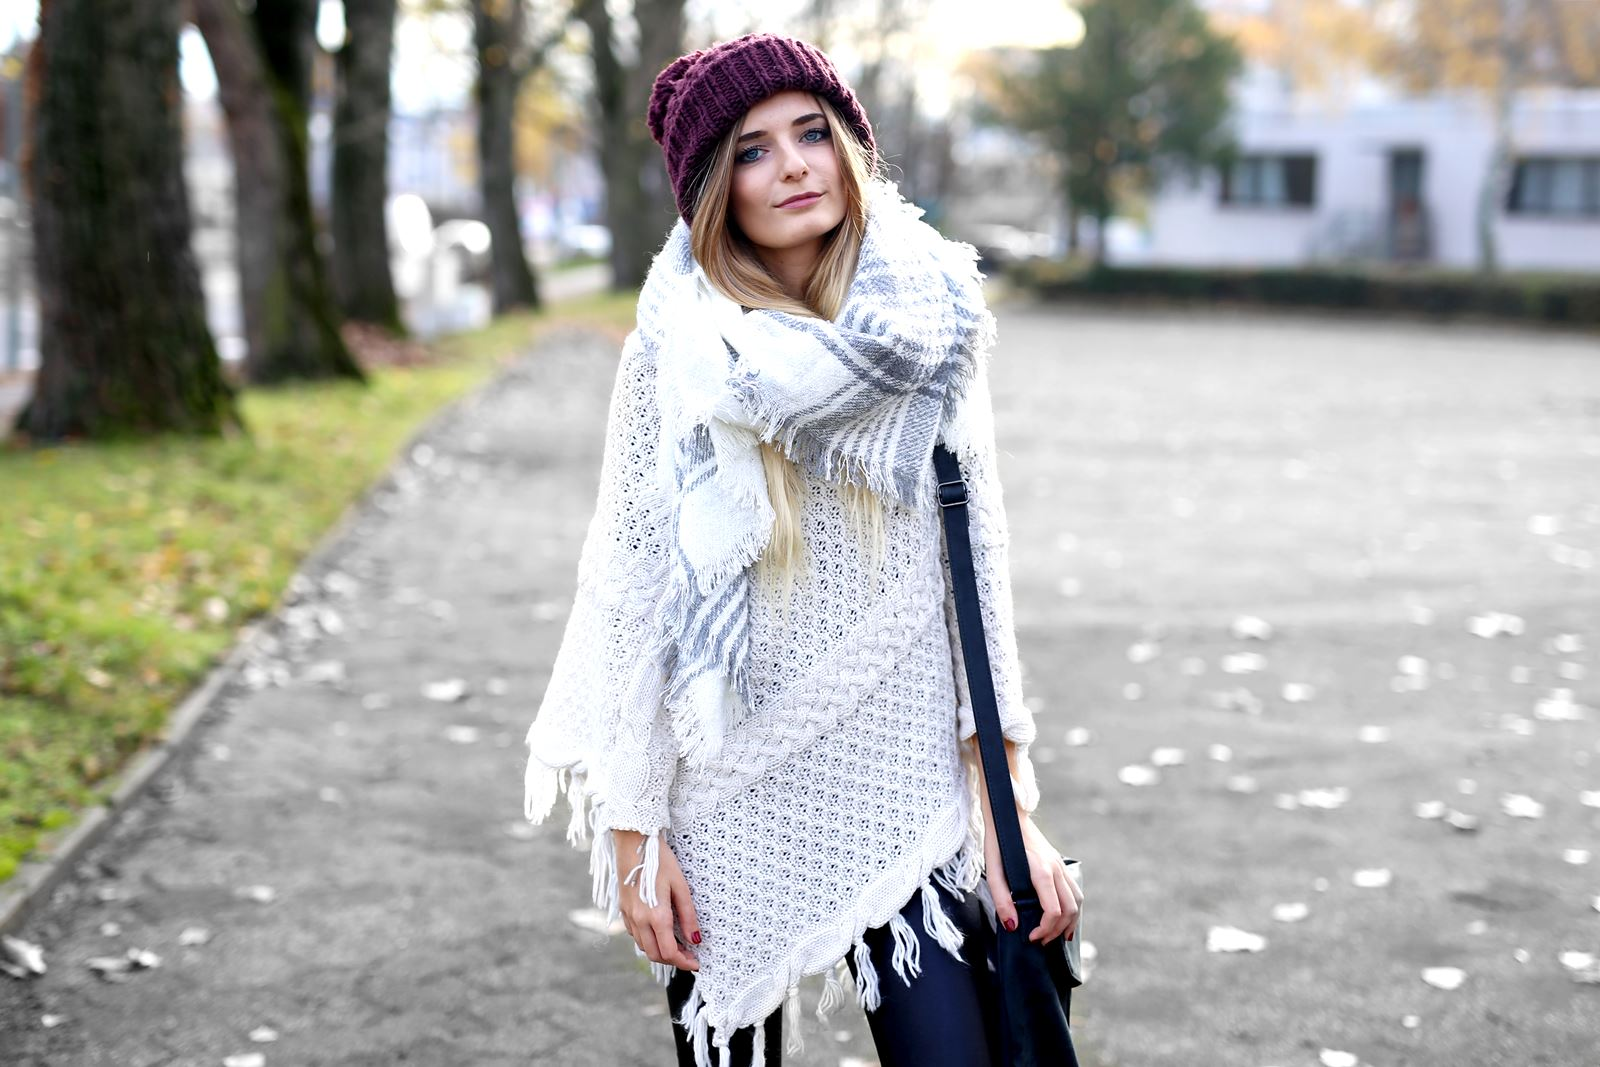 modeblog-german-fashion-blog-herbst-outfit-poncho-xxl-schal-5